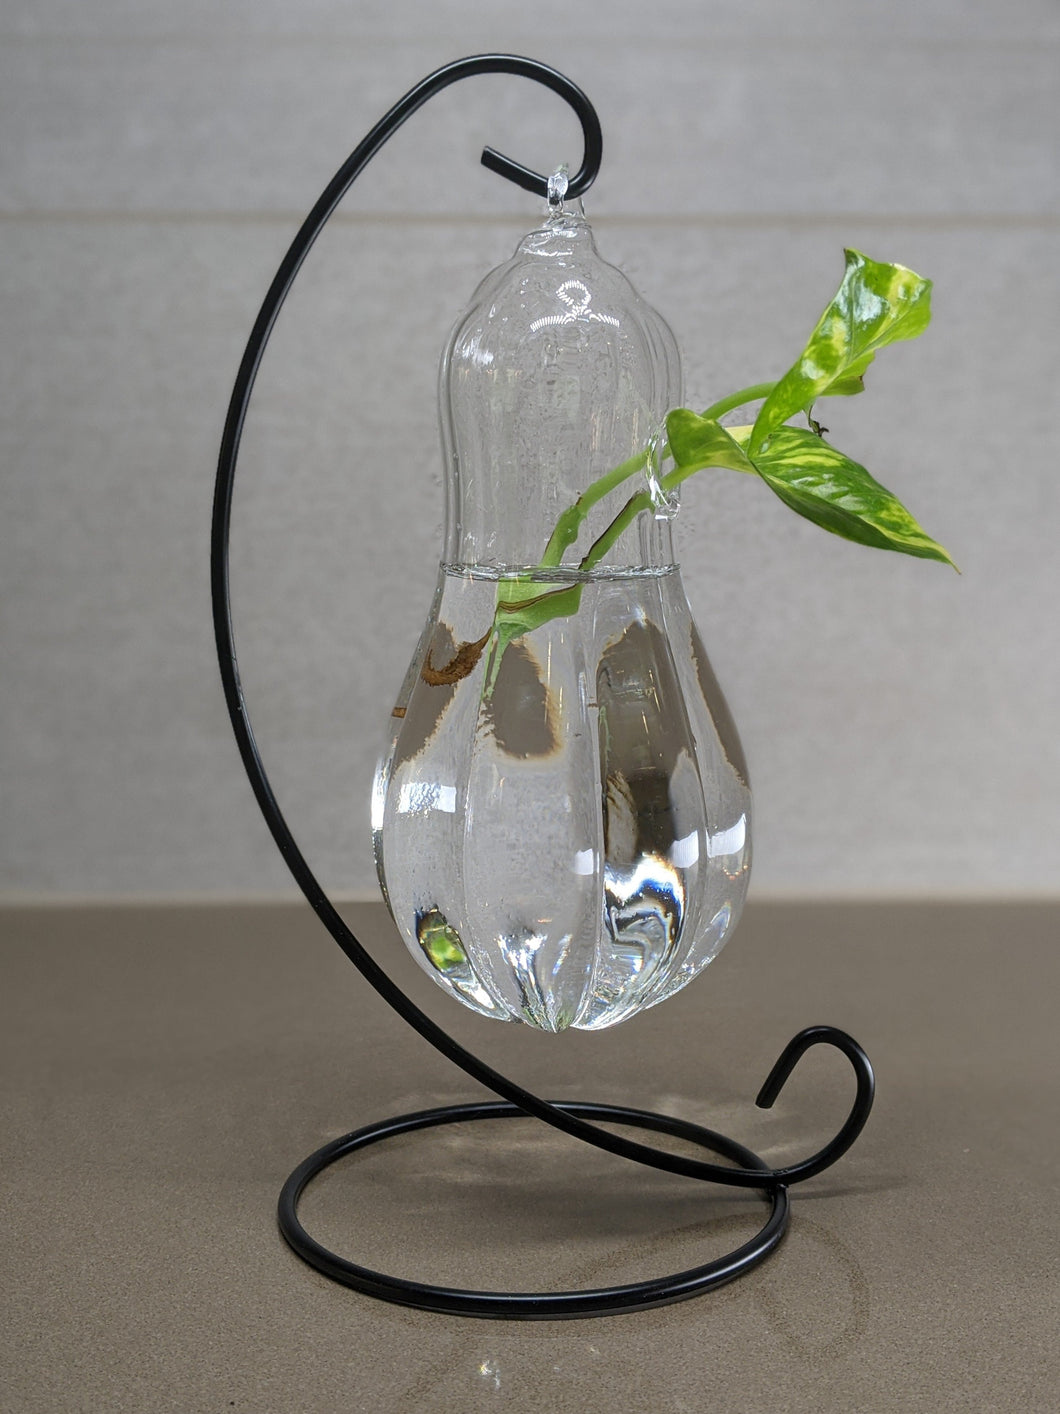 Squash Shaped Hanging Glass Terrarium and Propagation Stand